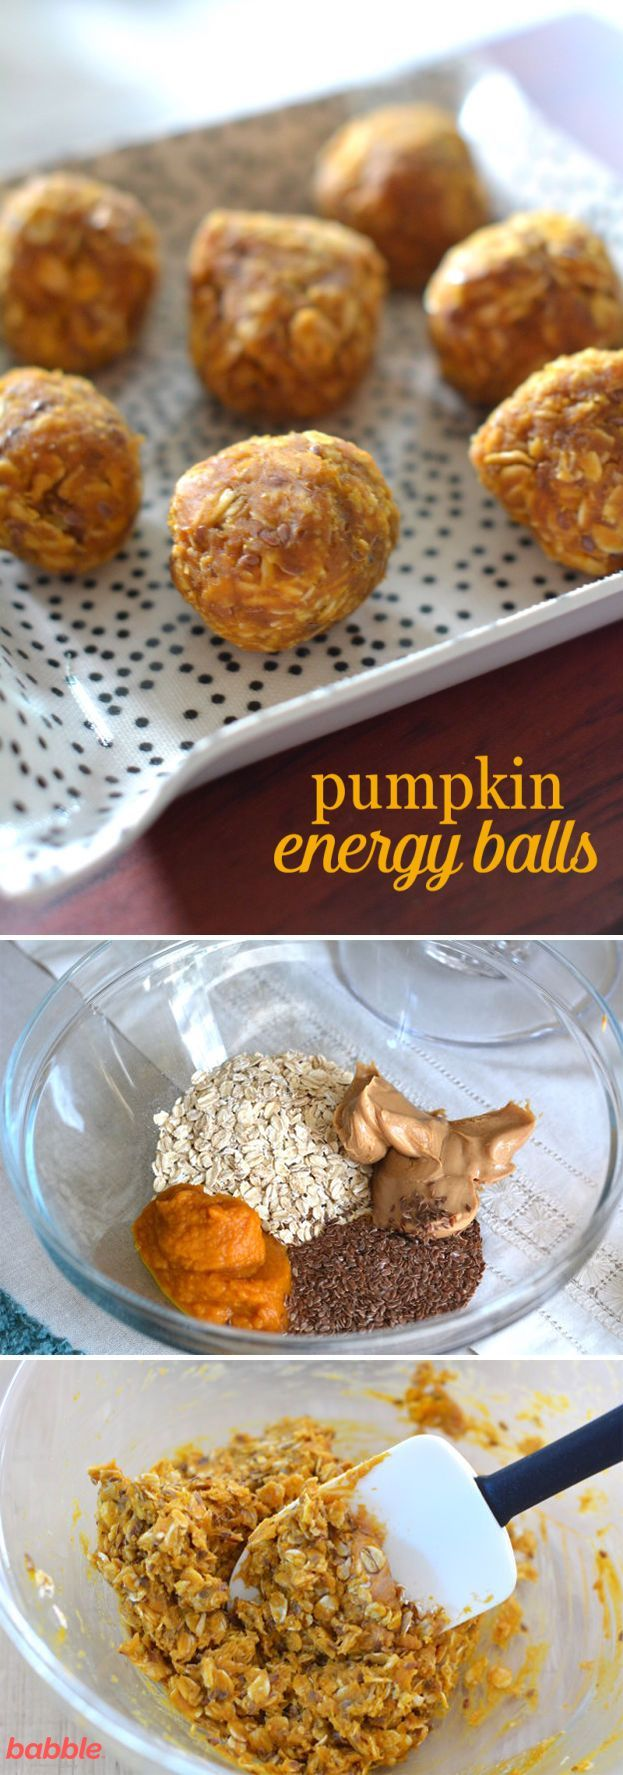 These Pumpkin Energy Balls Are So Easy, They Almost Make Themselves – Alison Sherwin